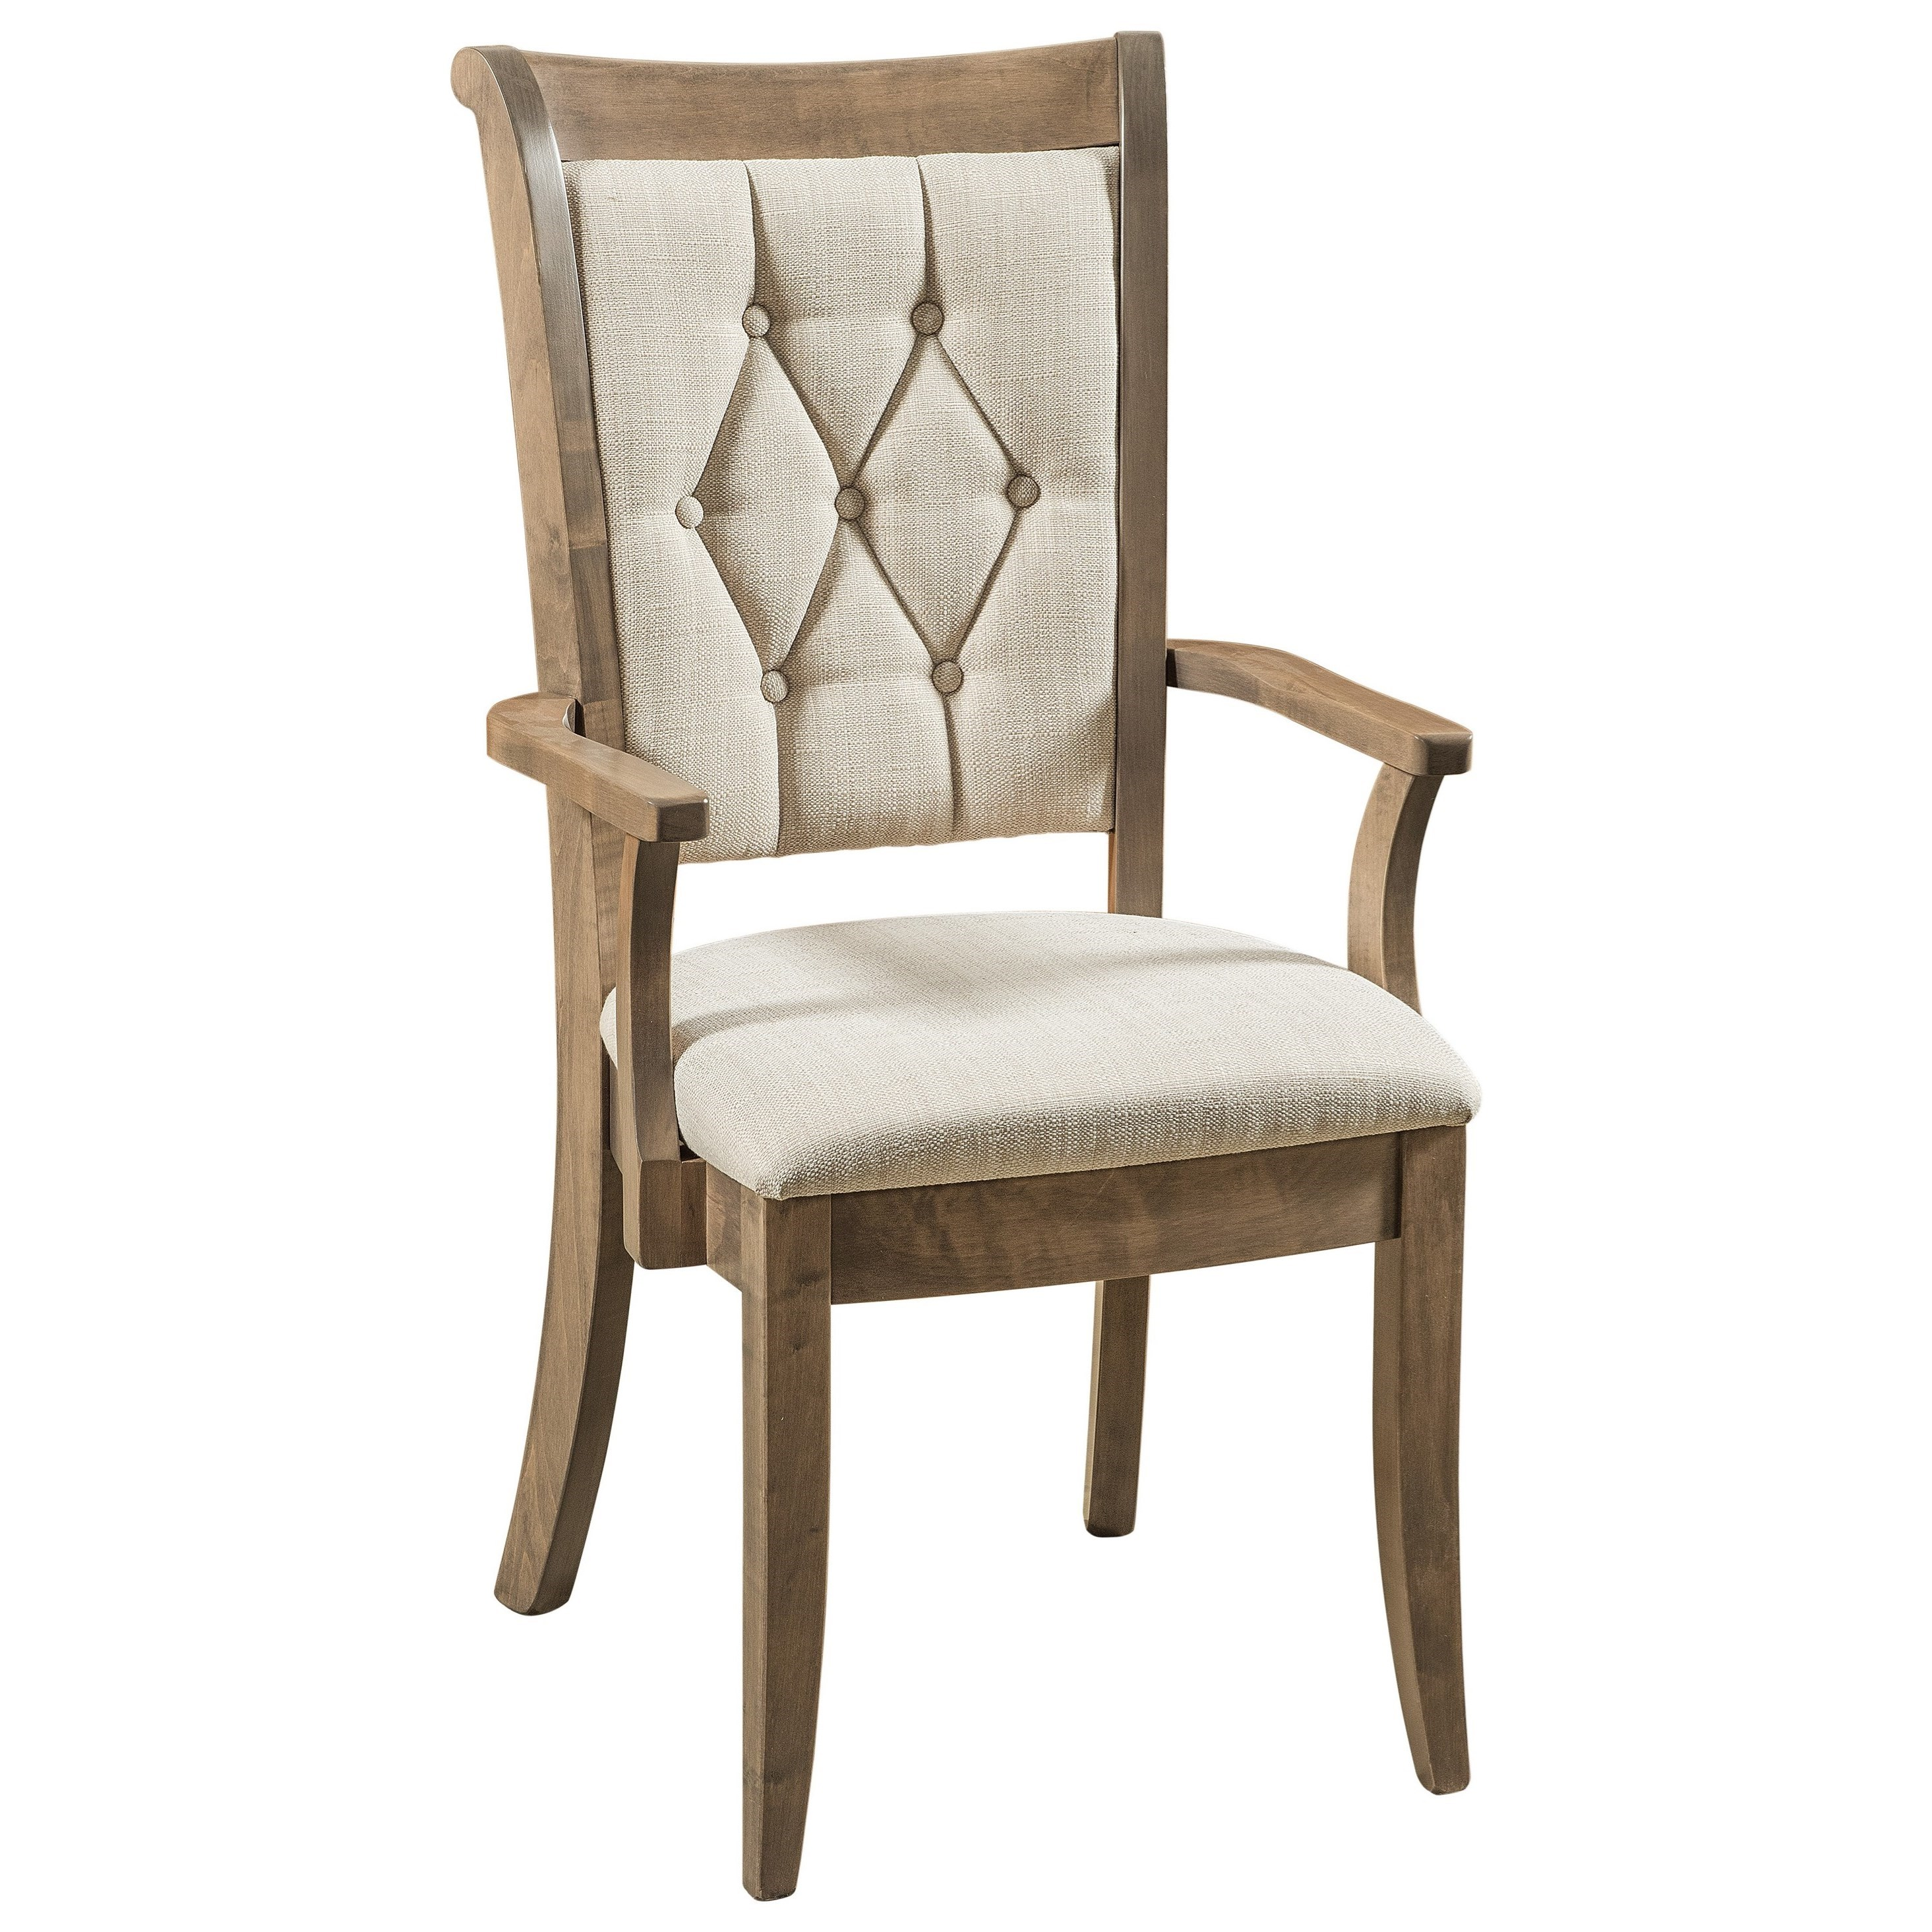 Chelsea Arm Chair - Fabric Seat by F&N Woodworking at Mueller Furniture